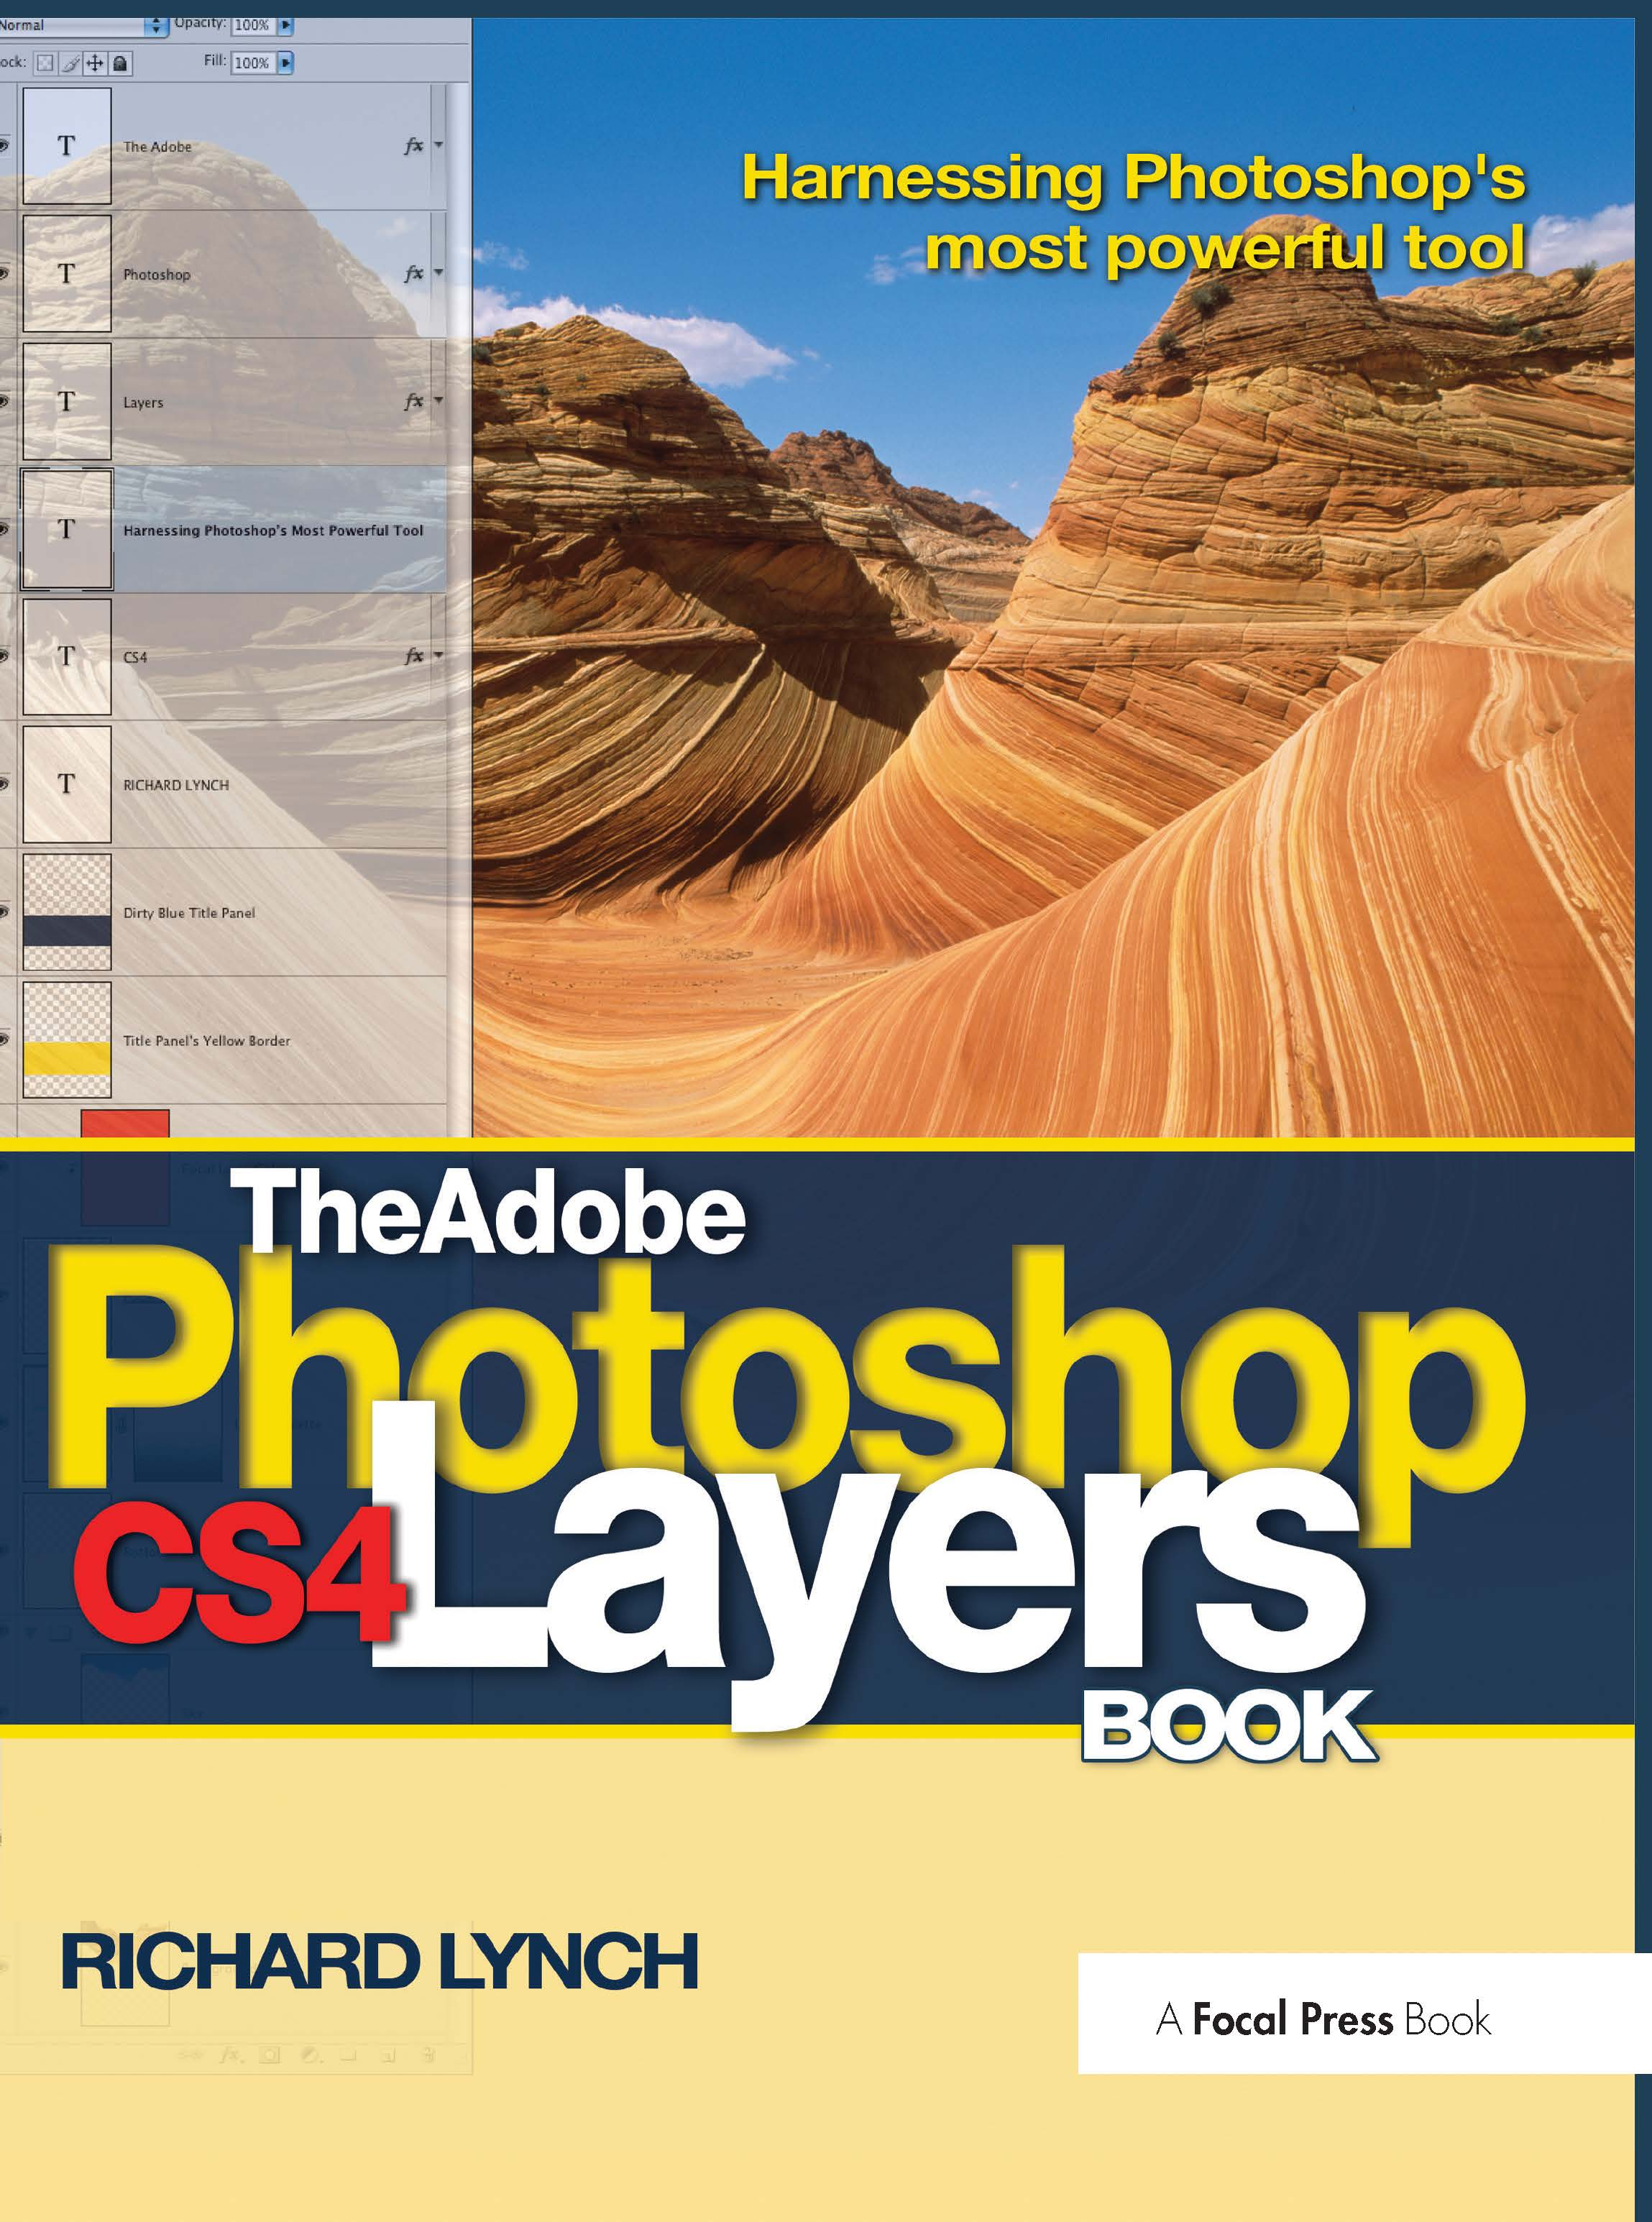 The Adobe Photoshop CS4 Layers Book: Harnessing Photoshop's most powerful tool book cover